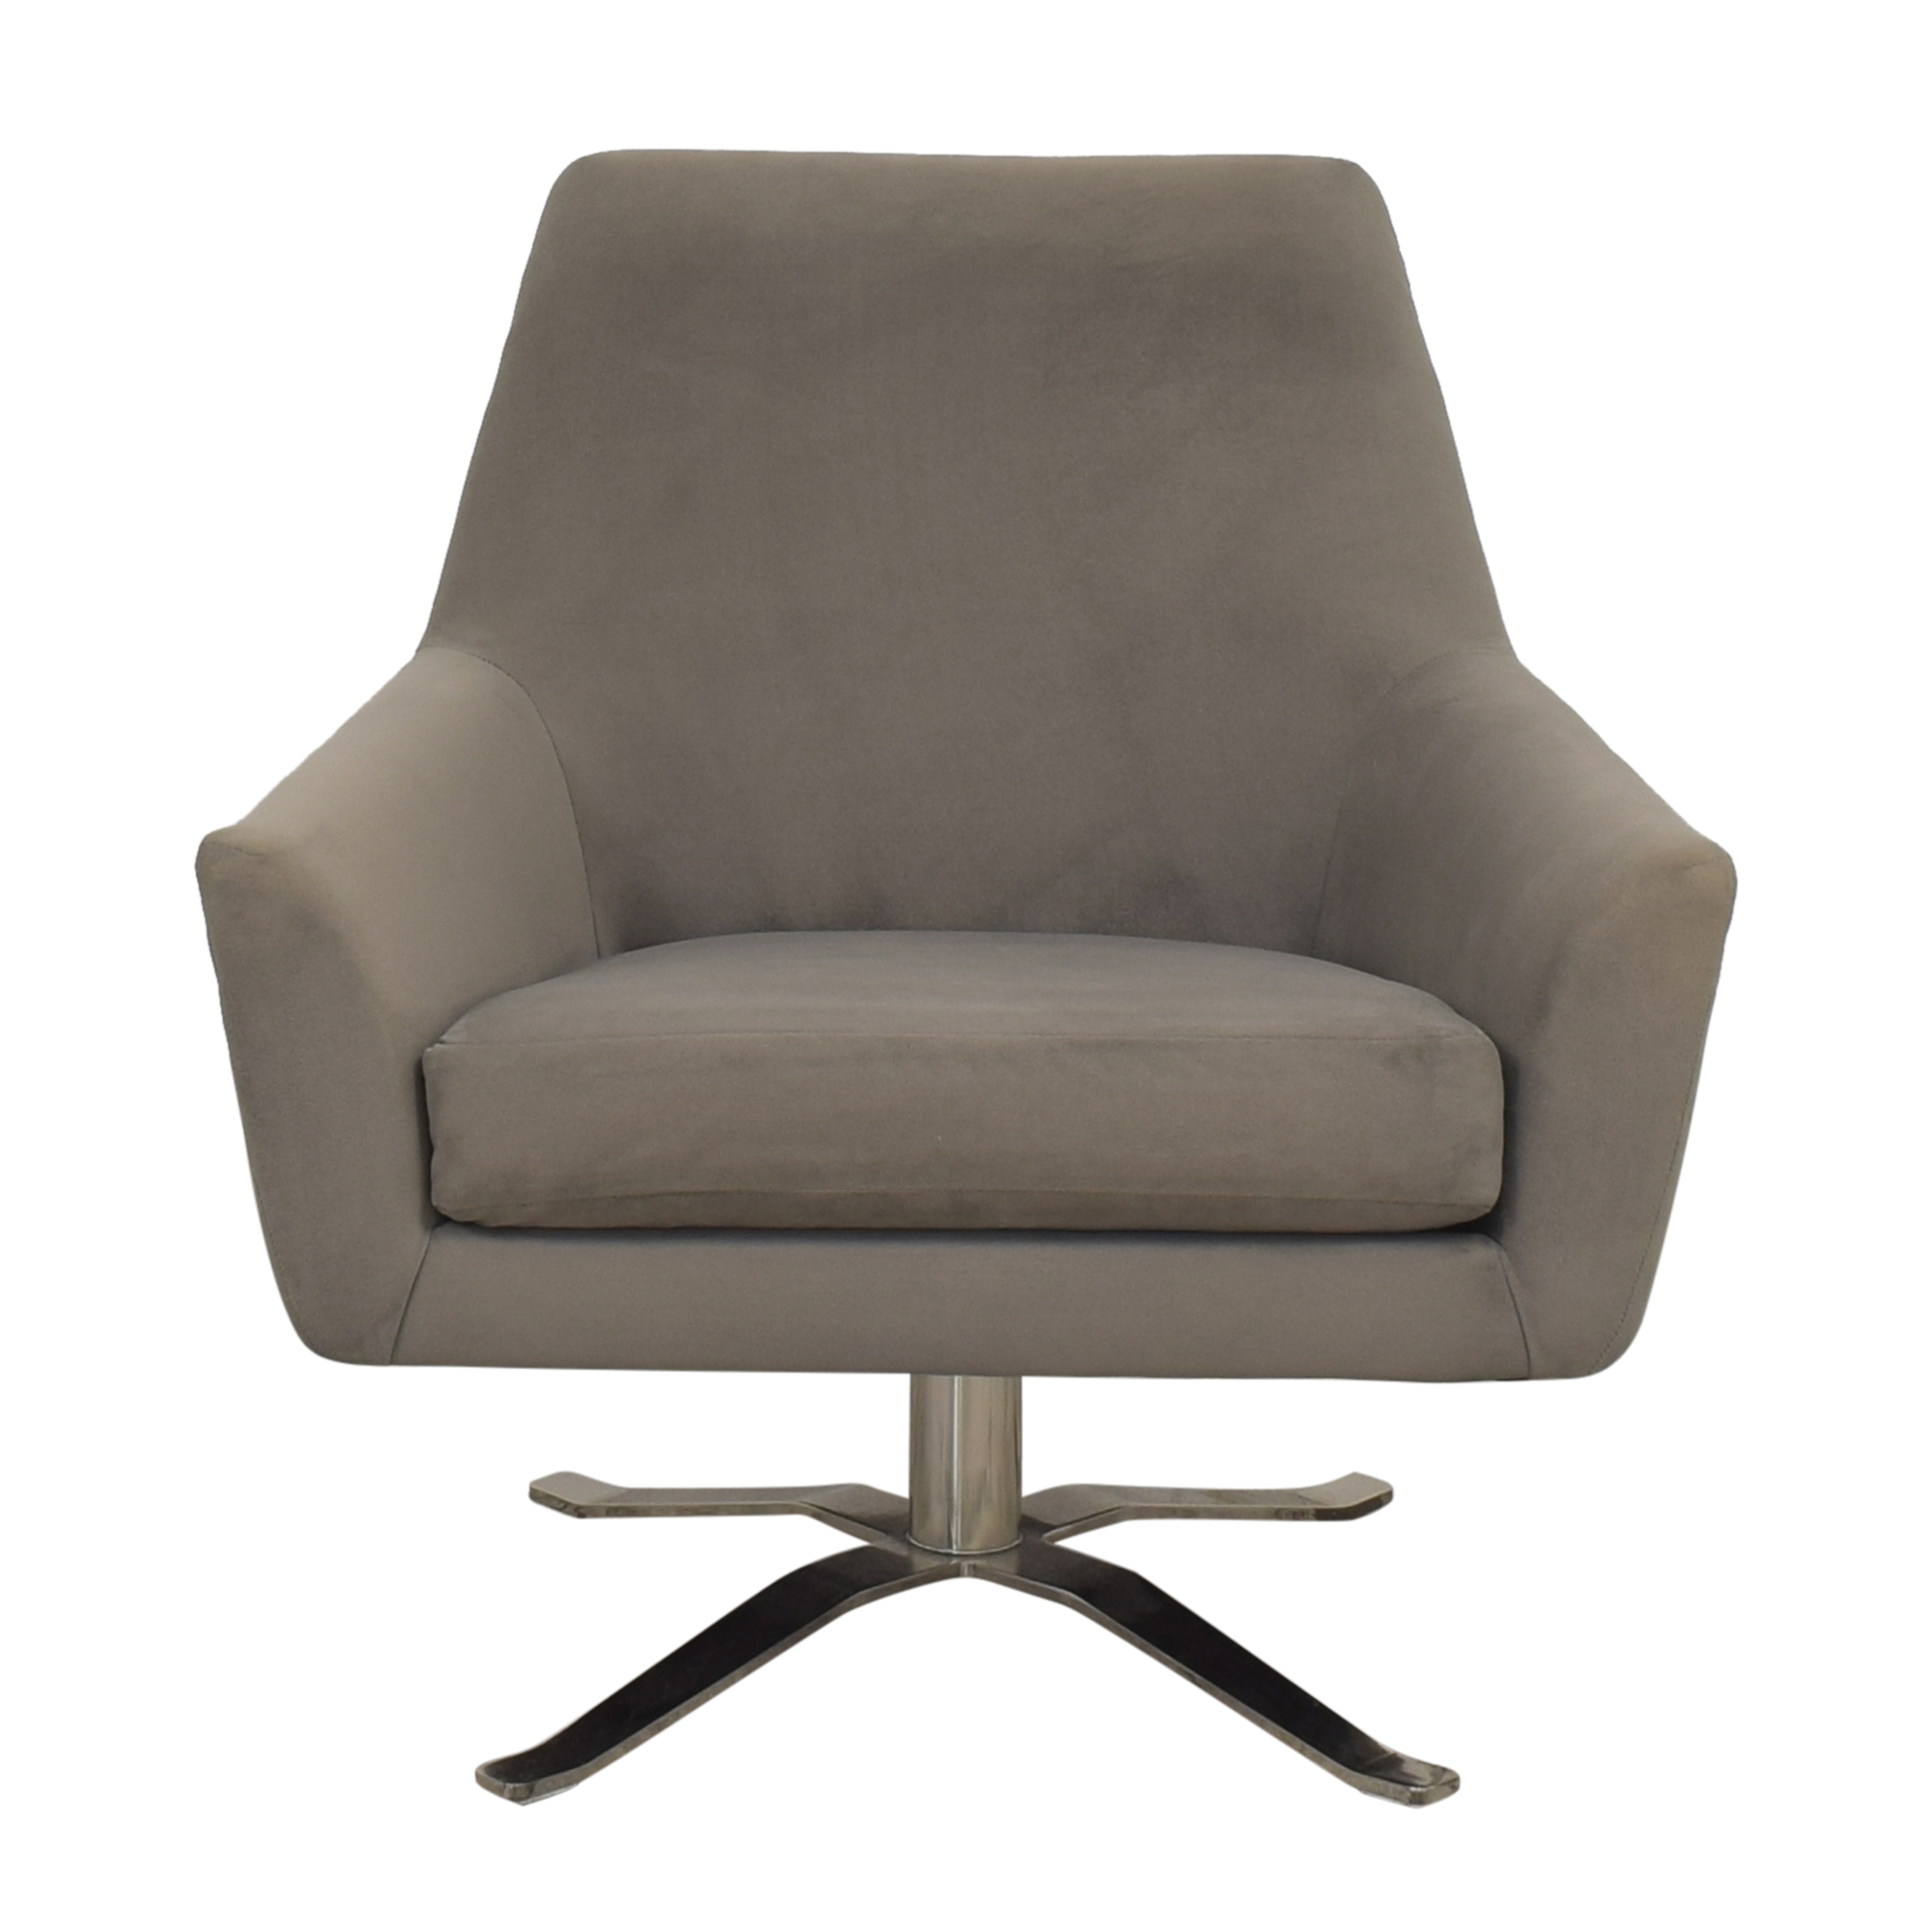 West Elm West Elm Lucas Swivel Chair ct